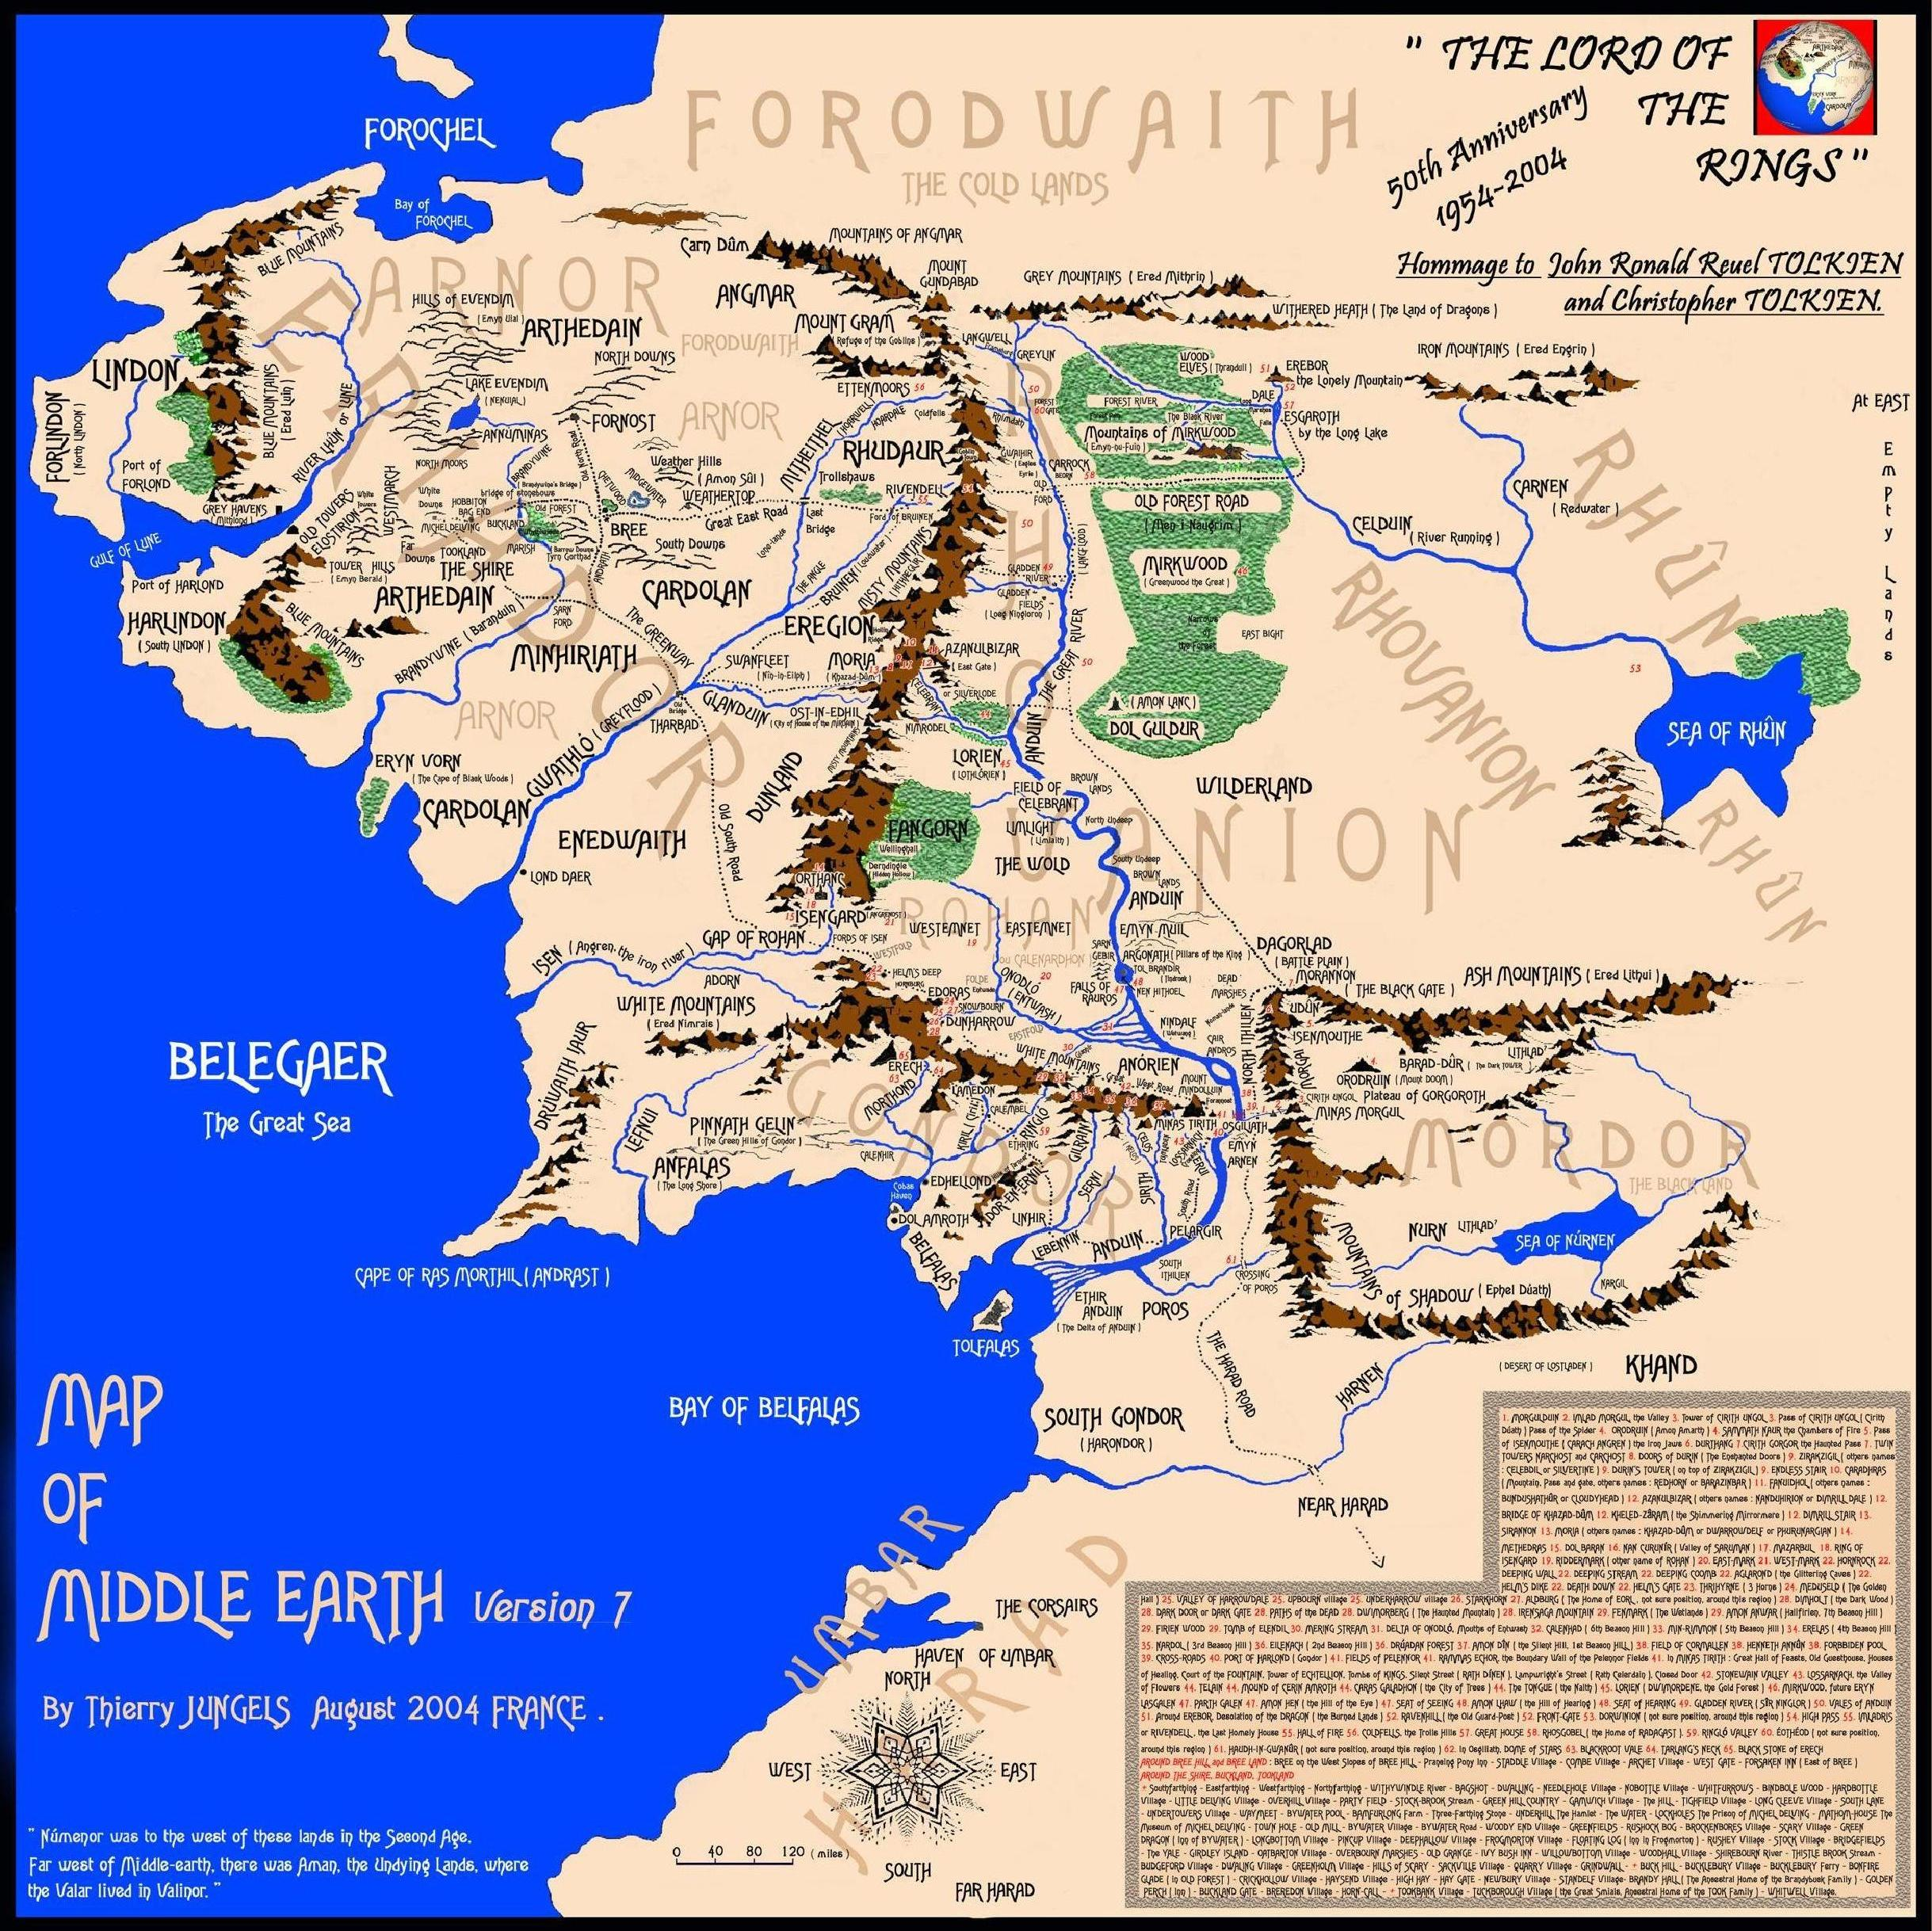 MAP-OF-MIDDLE-EARTH-VERSION-7.jpg